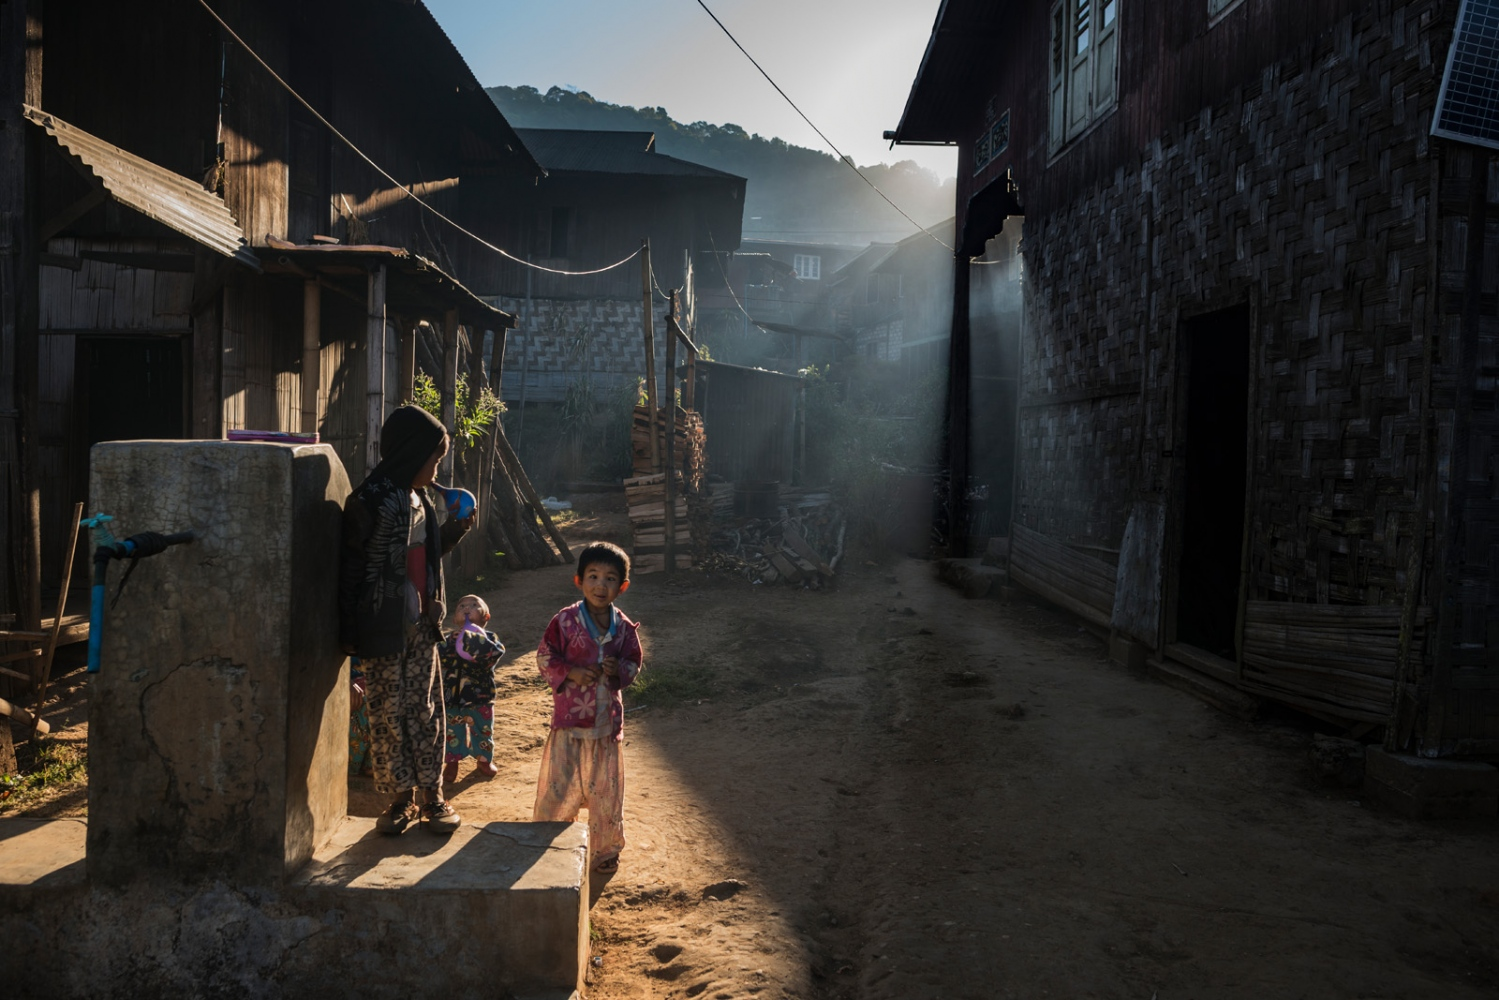 Children in the streets of a opium producing village in Shan State, Myanmar. Most farmers and workers here say they would rather grow something else than poppy, but that it is the only way for them to send the kids to school.